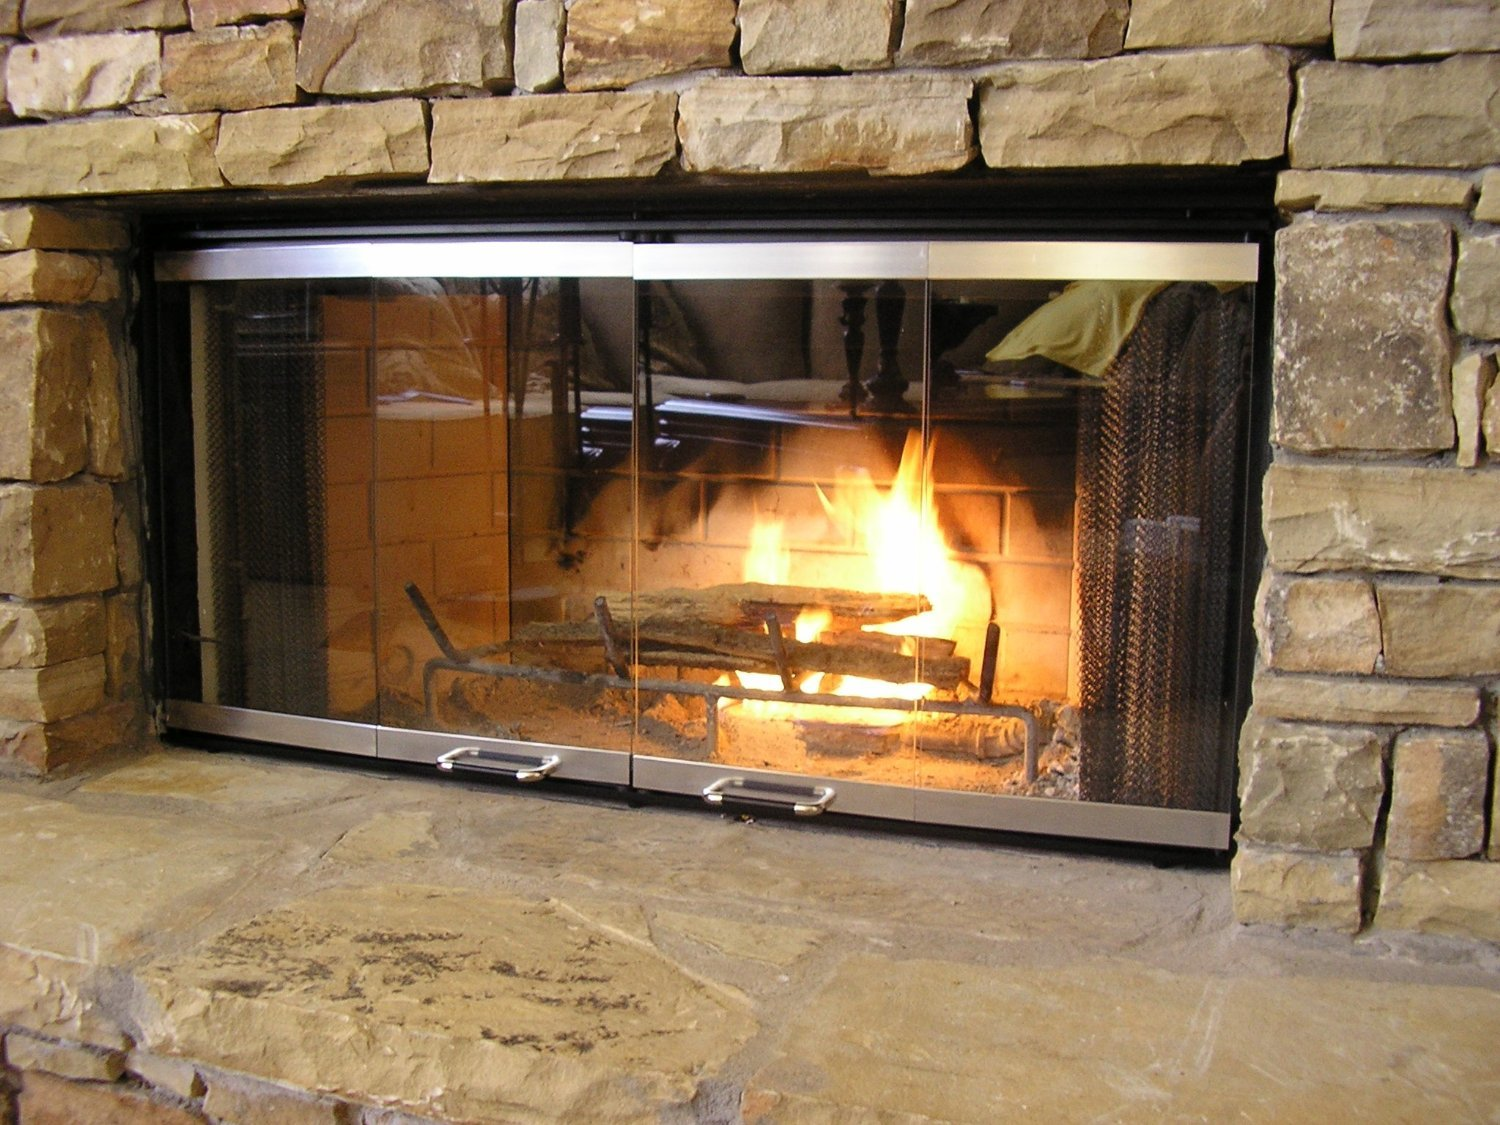 Amazon.com: Heatilator Fireplace Doors - Stainless Steel 36 ...